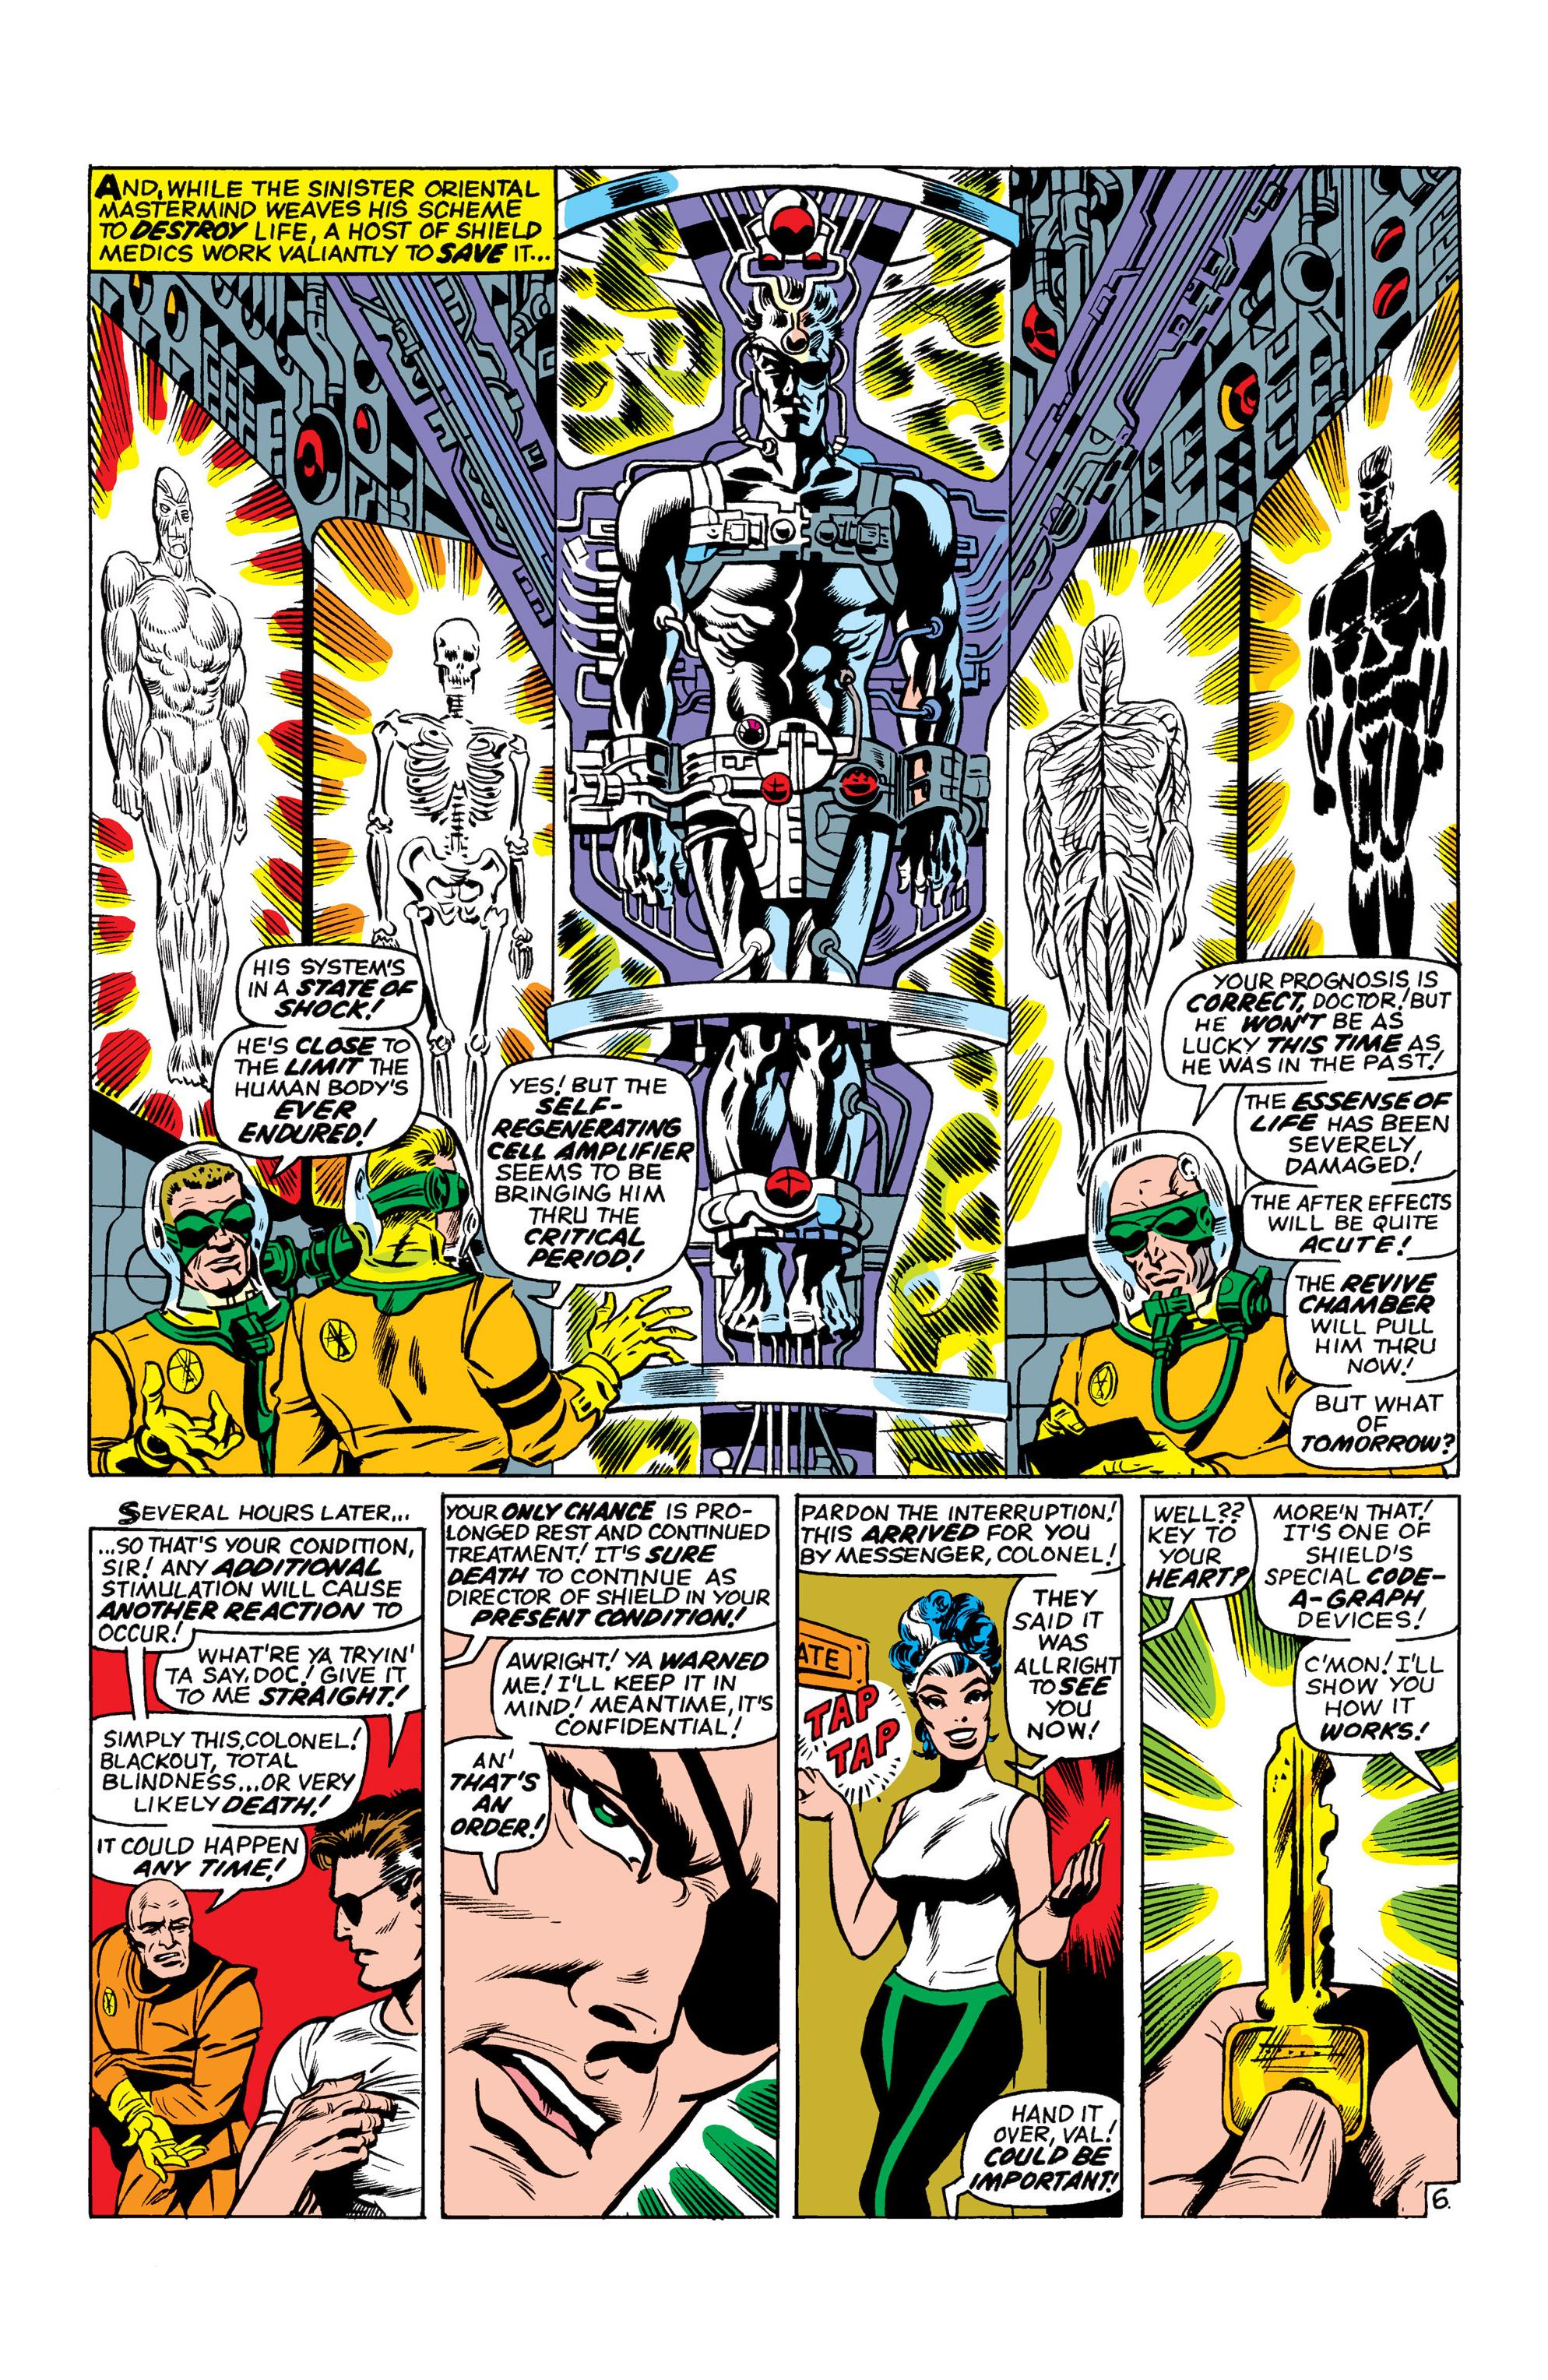 S.H.I.E.L.D. by Jim Steranko The Complete Collection review